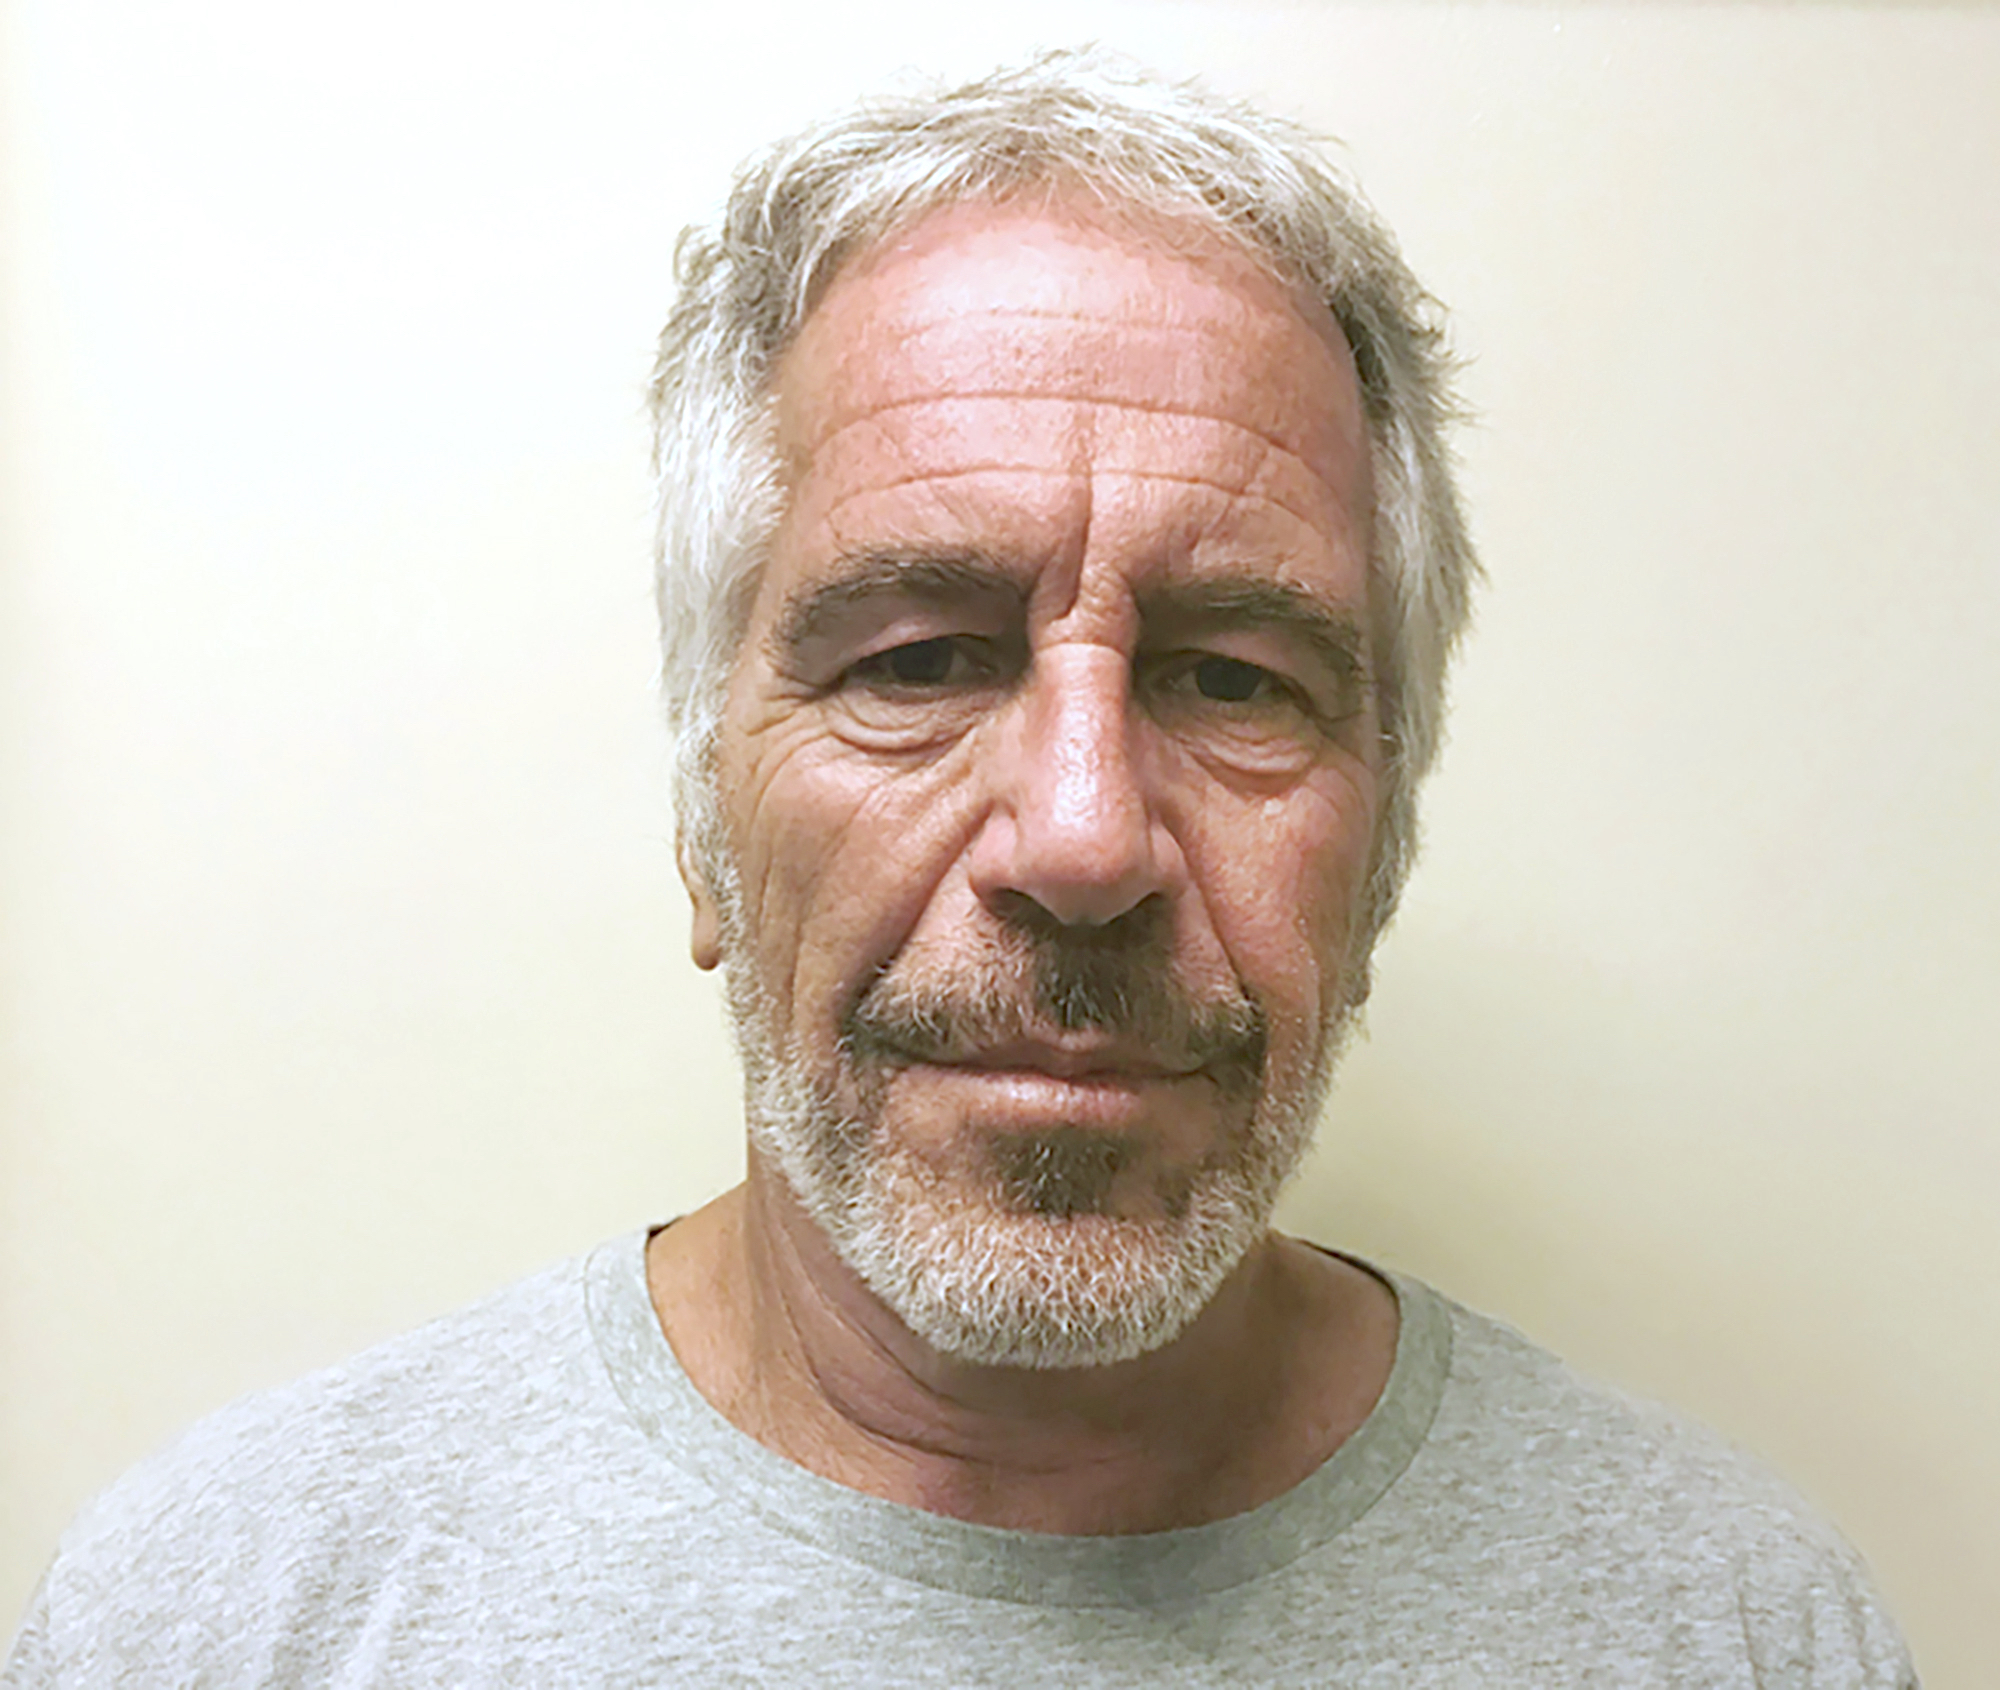 Jeffrey Epstein's Suicide Watch 'Companion' Says He Killed Himself